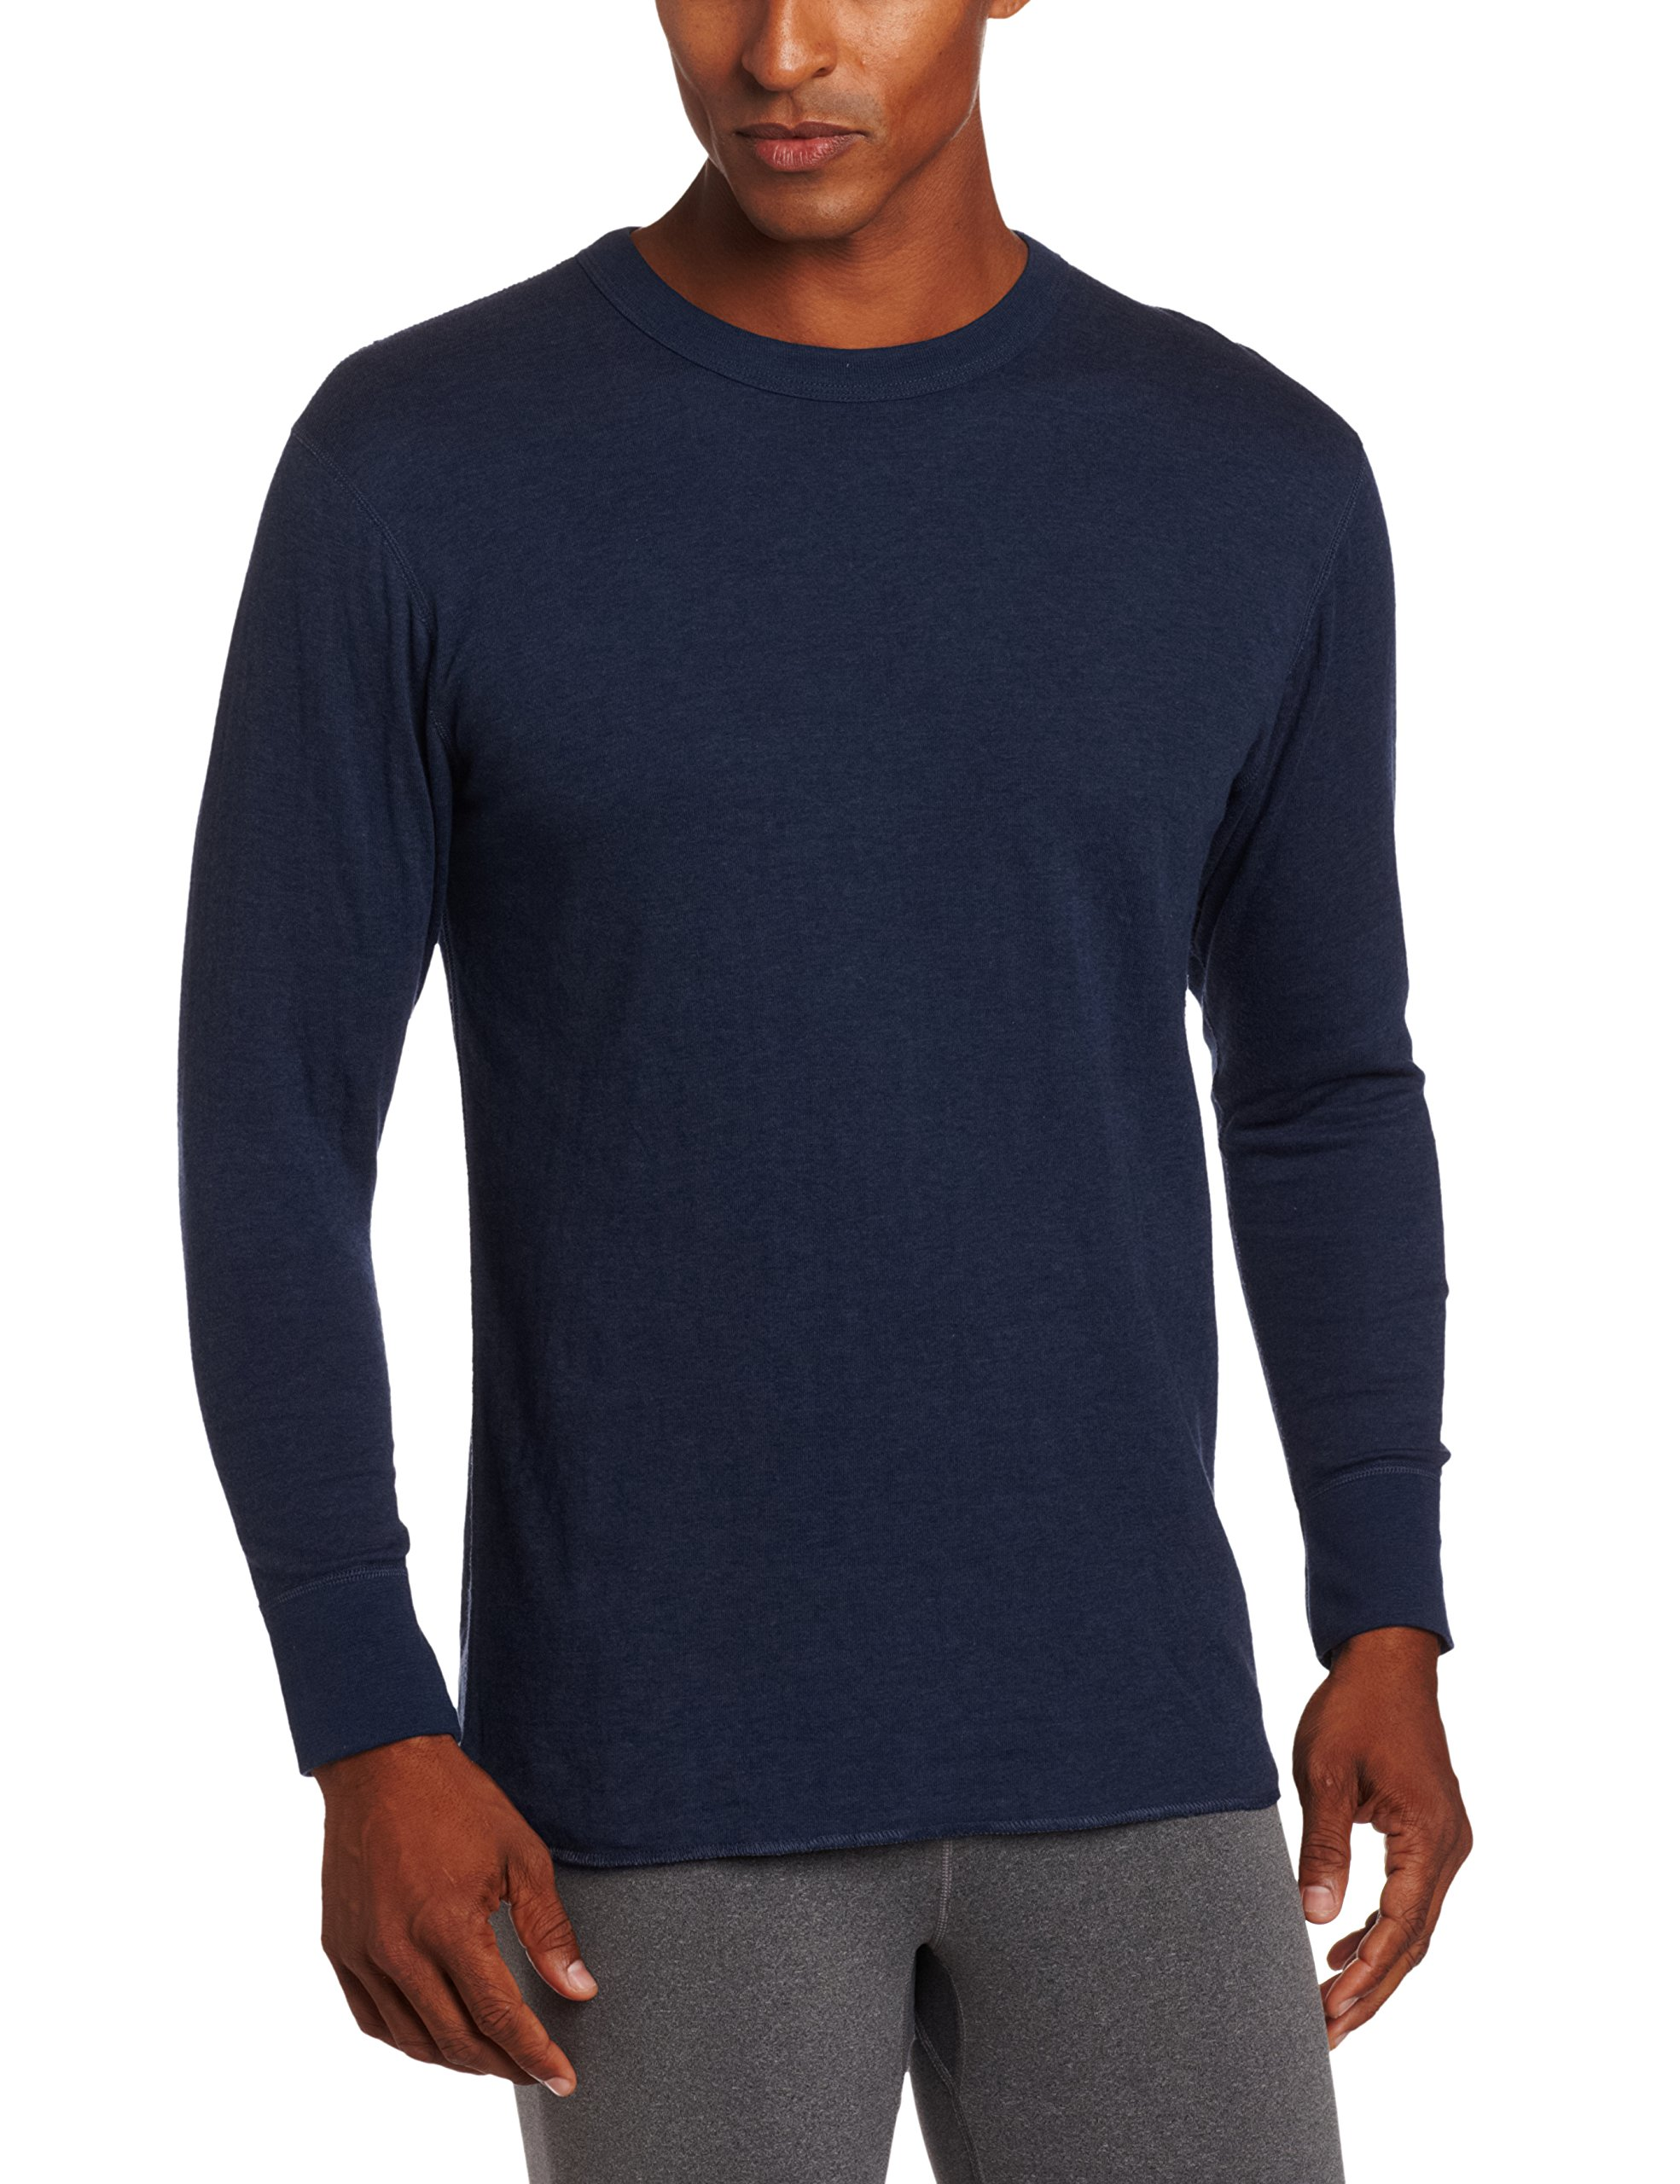 Duofold Men's Mid Weight Double Layer Thermal Shirt, Blue Jean, XX-Large by Duofold